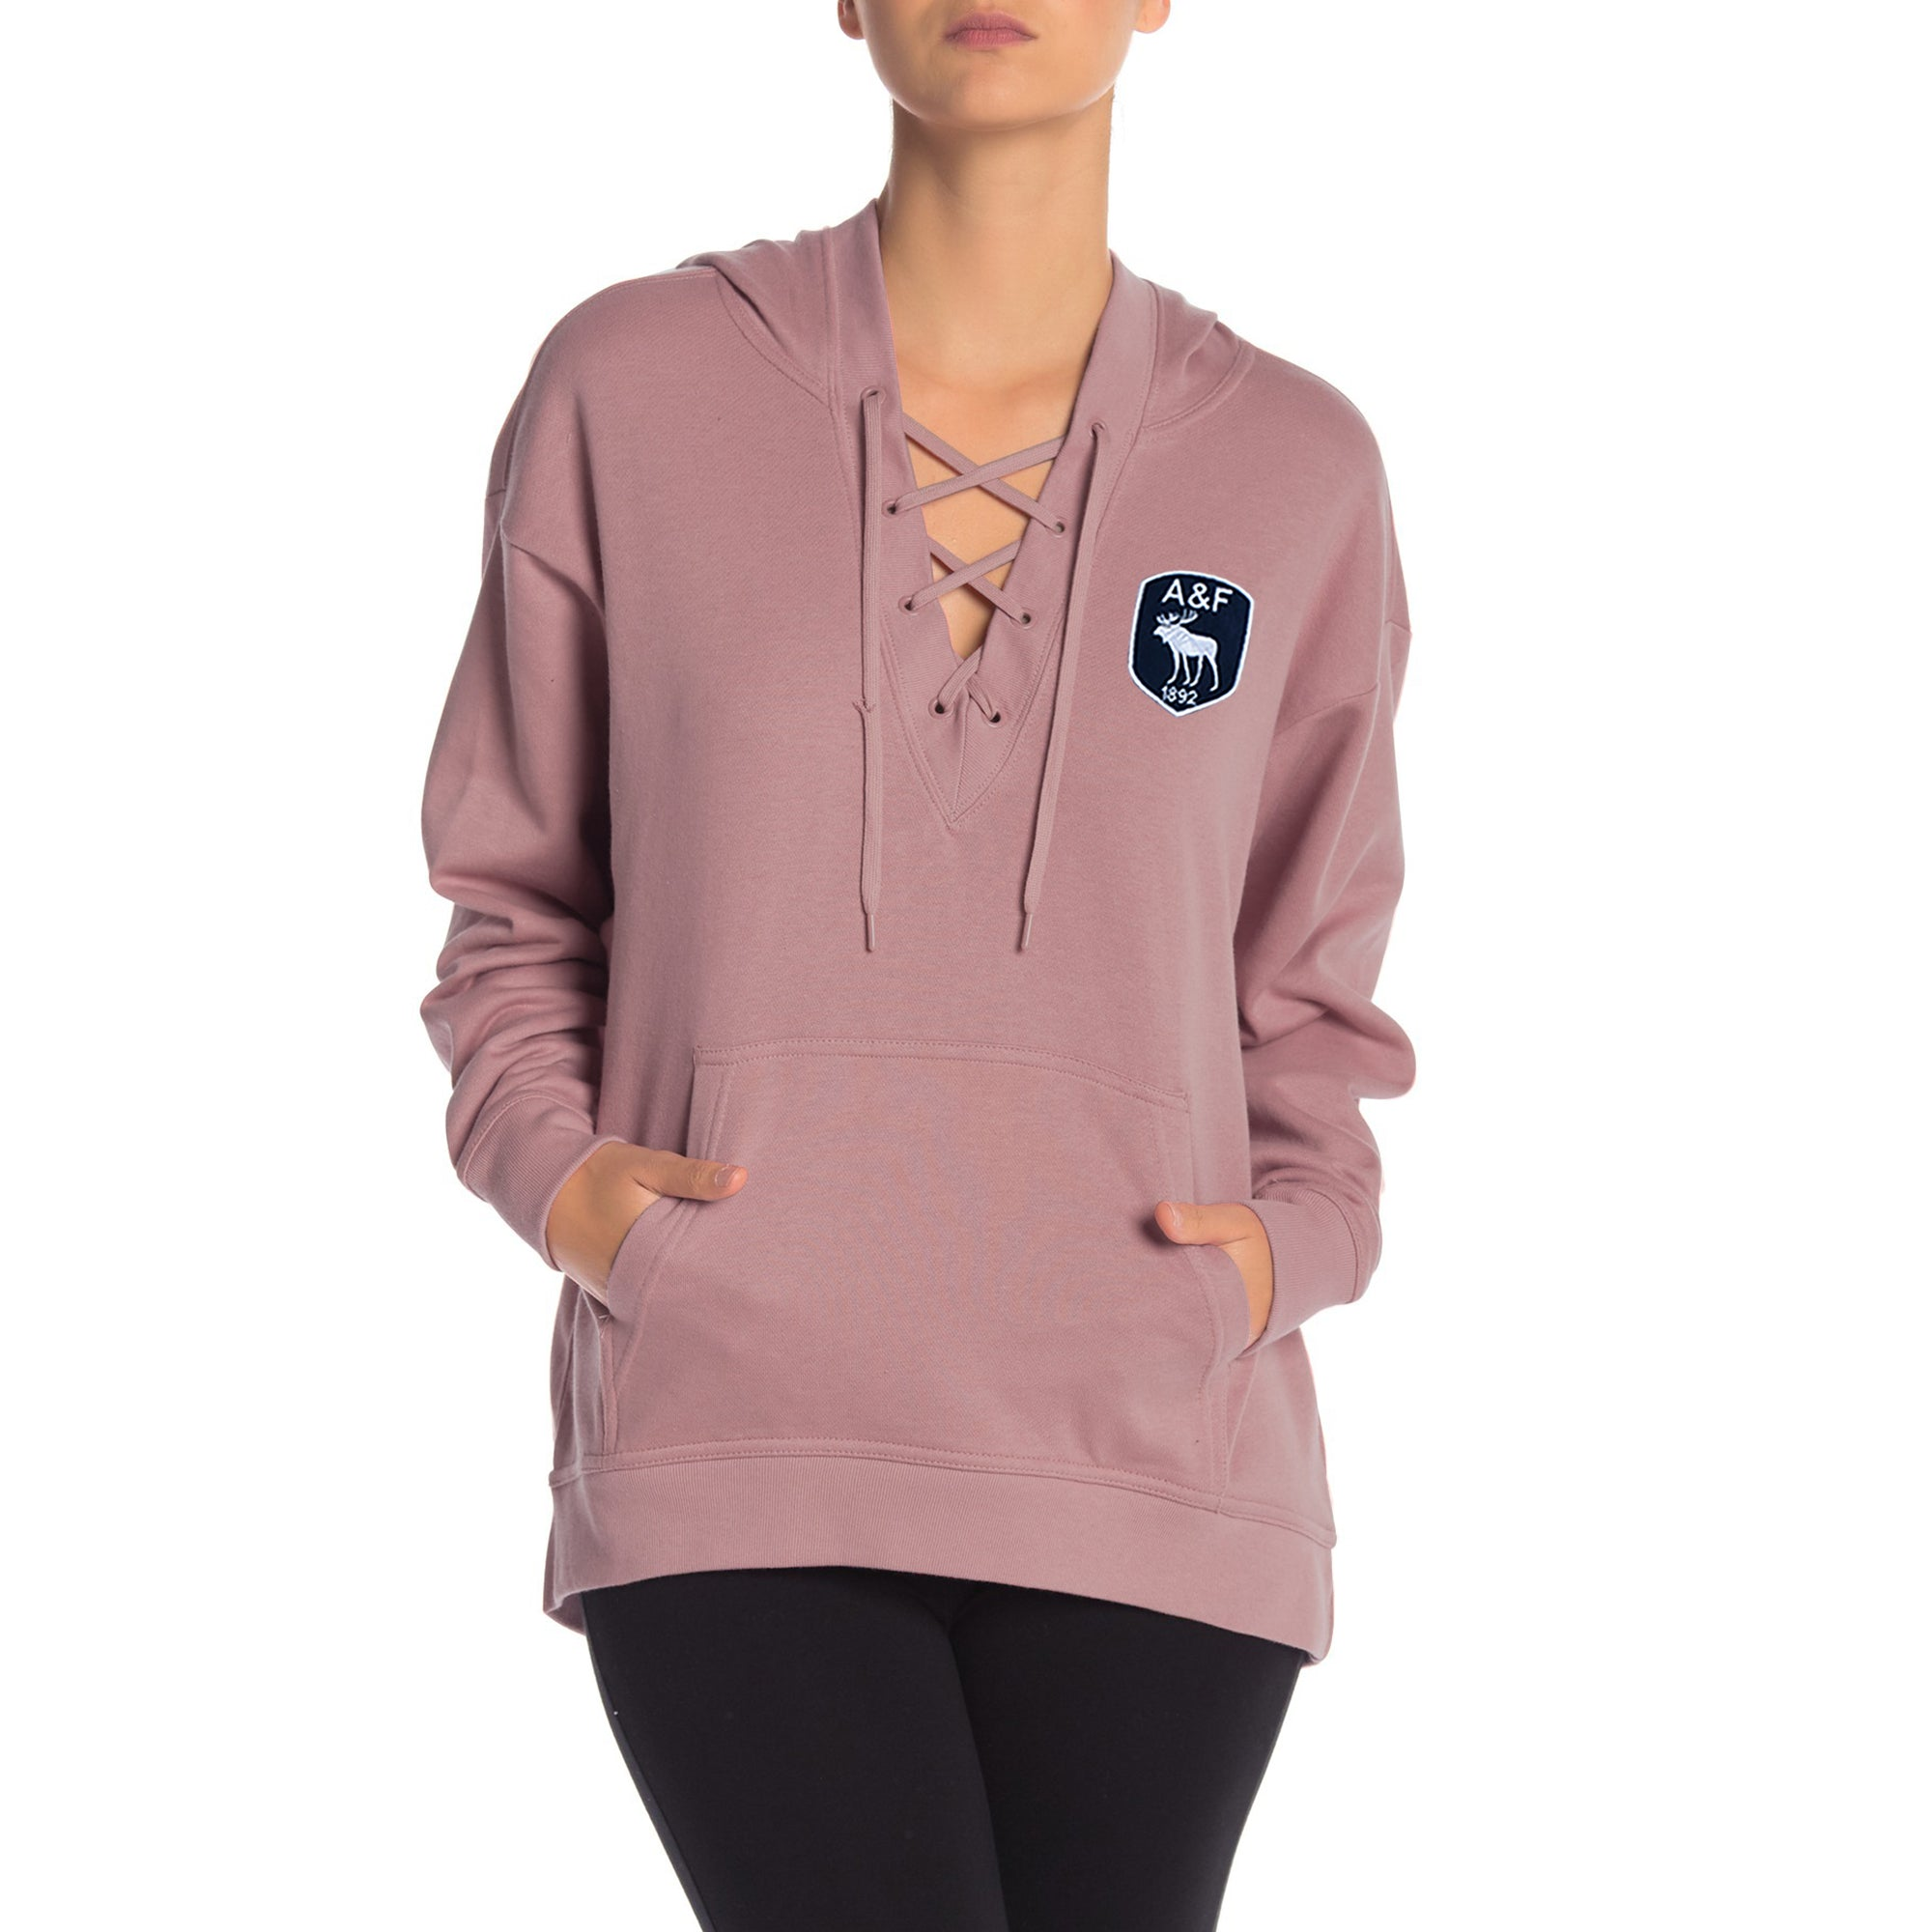 A&F Terry Fleece V Neck Stylish Pullover Hoodie For Ladies-Light Pink-BE7393